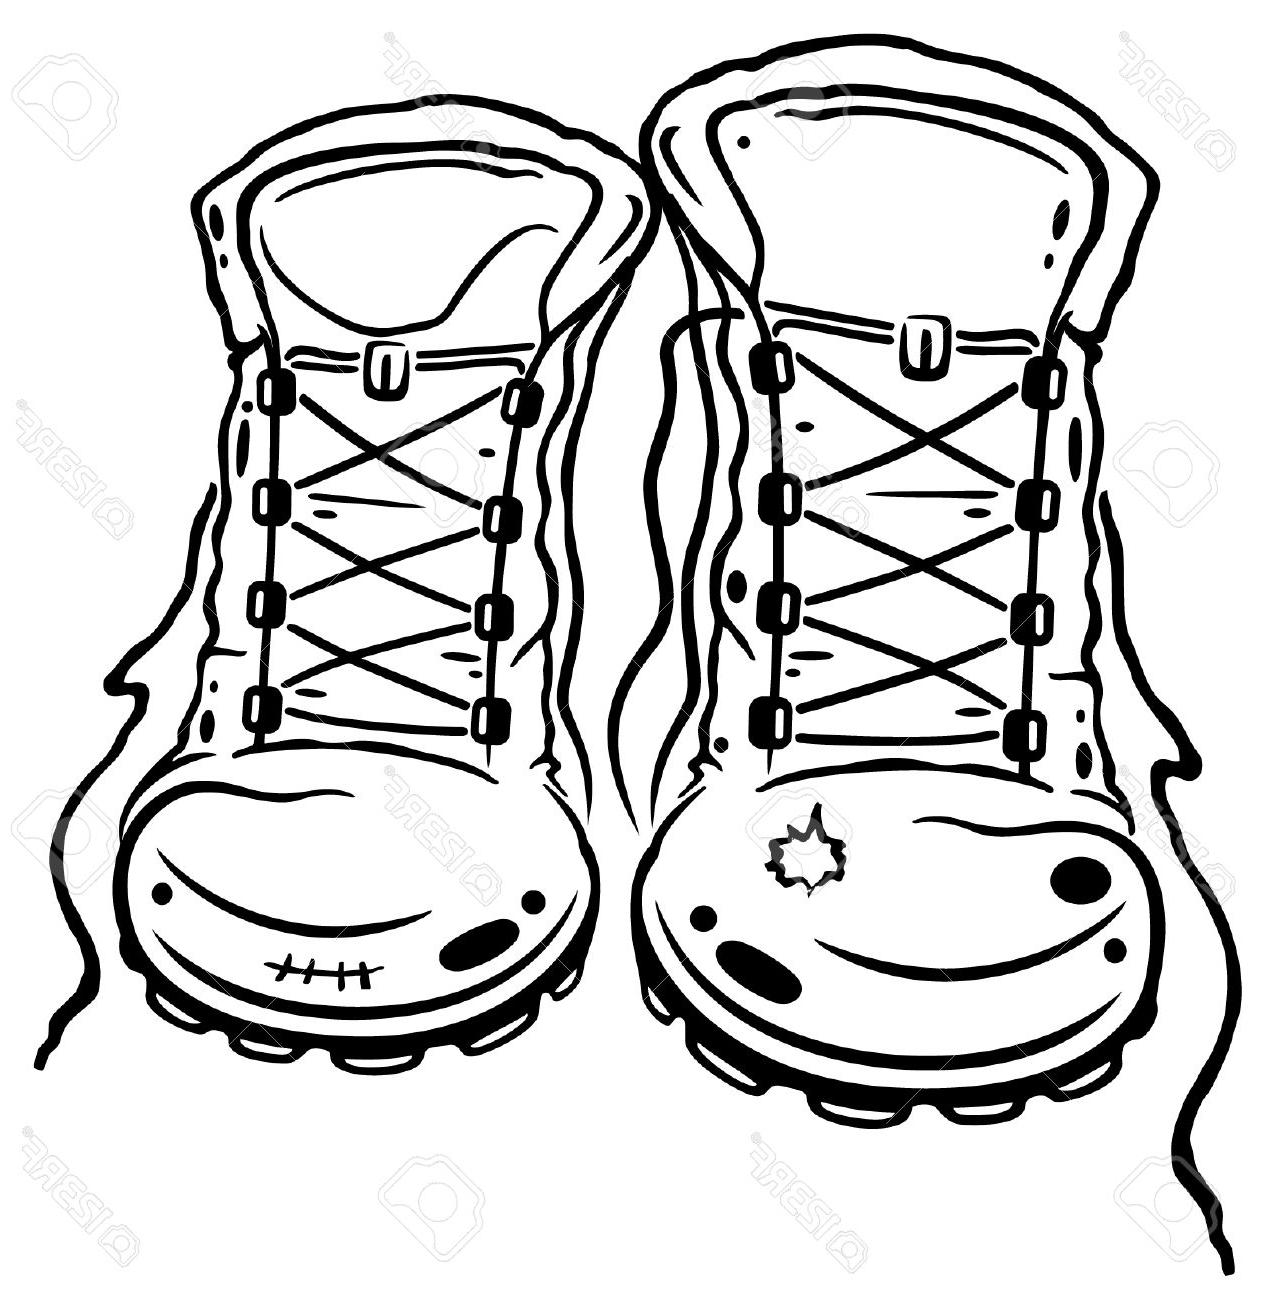 Free Hiking Clipart